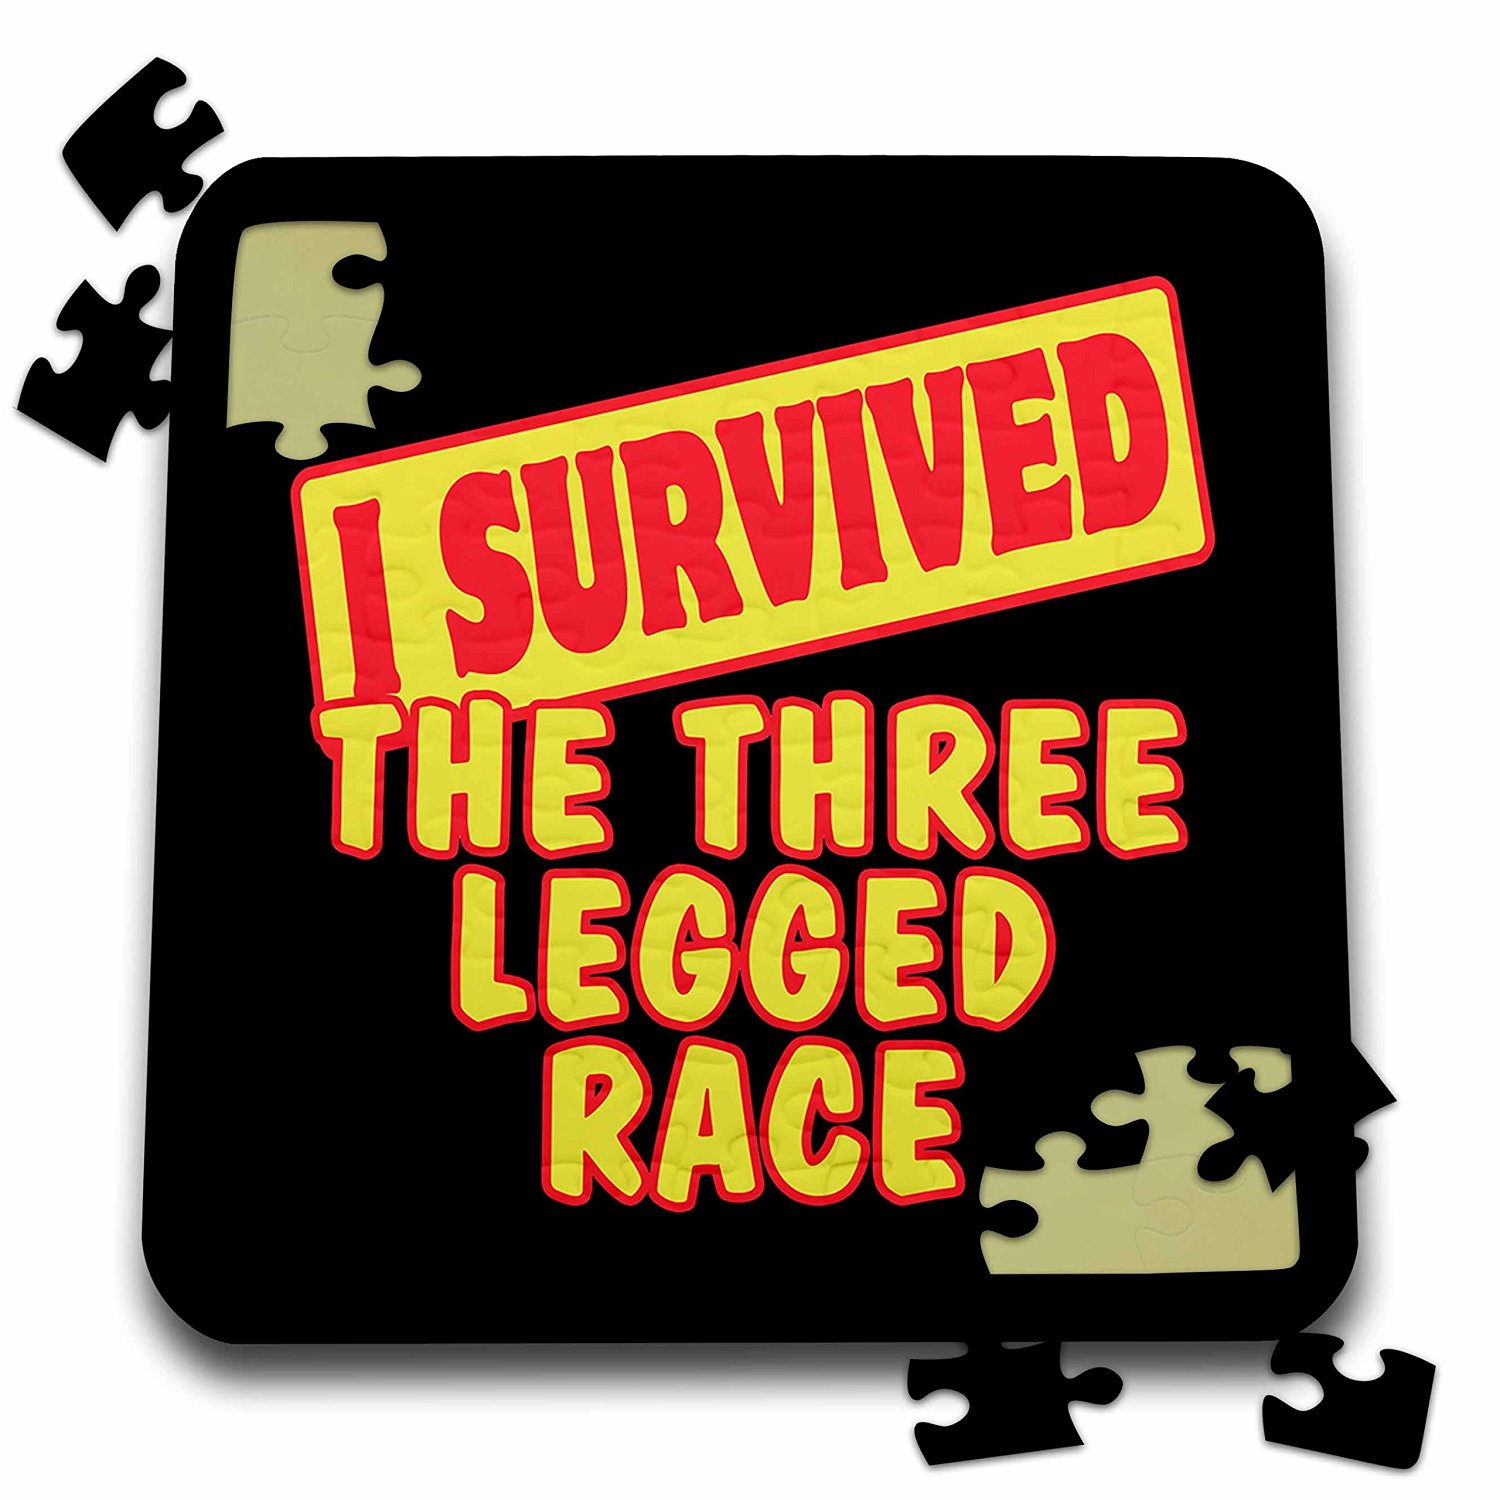 Dooni Designs Survive Sayings - I Survived The Three Legged Race Survial Pride And Humor Design - 10x10 Inch Puzzle (pzl_118397_2)